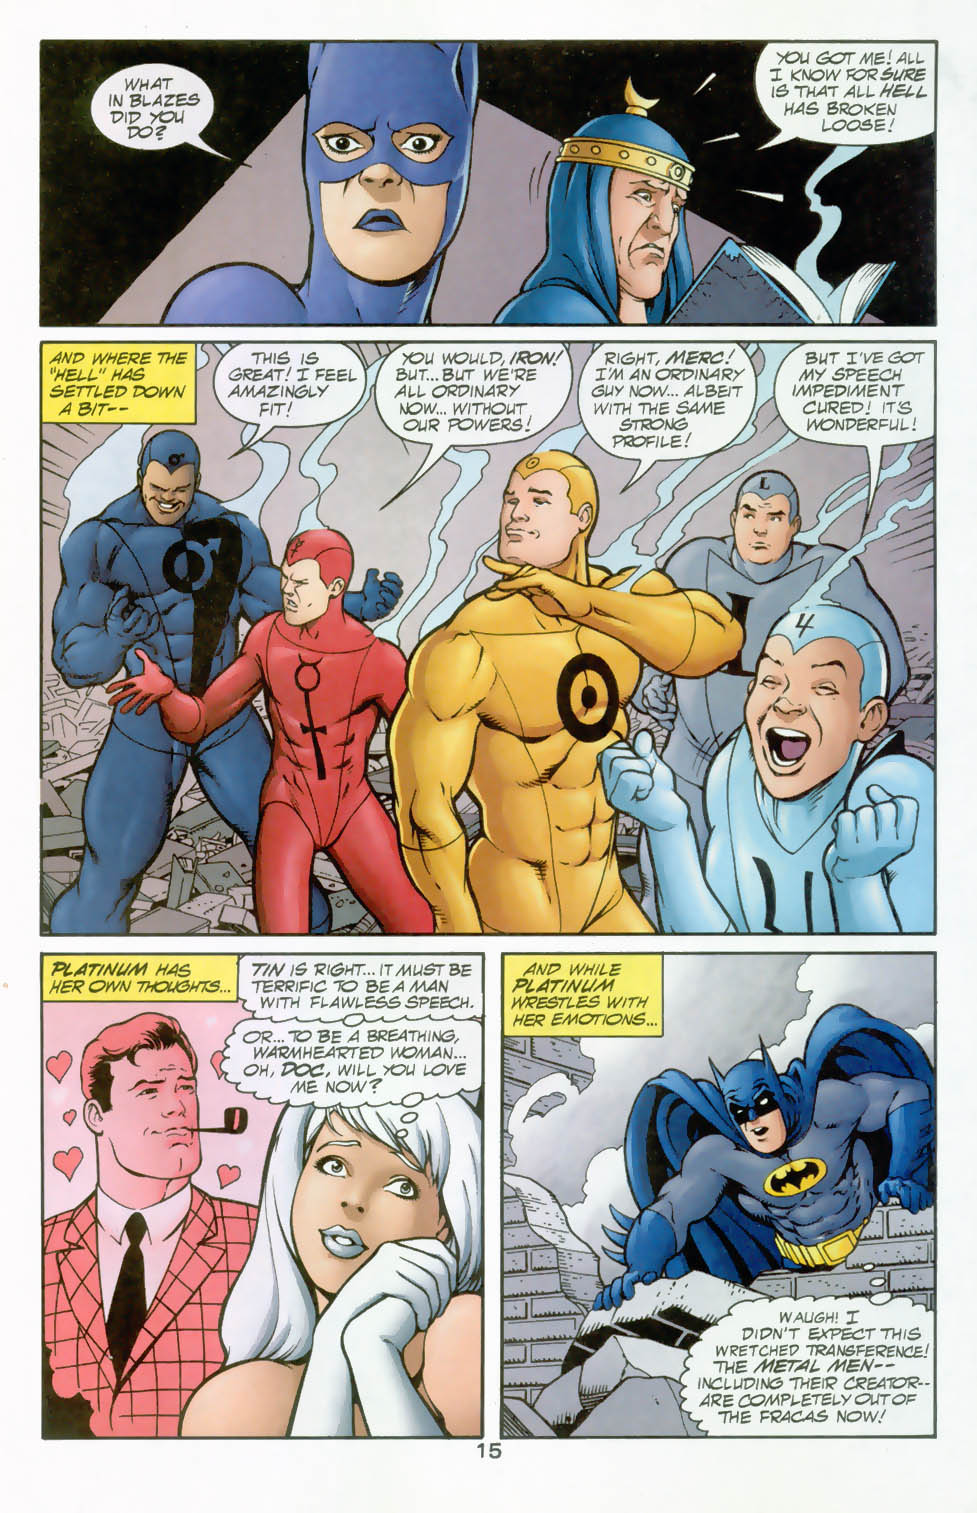 Read online Silver Age: The Brave and the Bold comic -  Issue # Full - 16